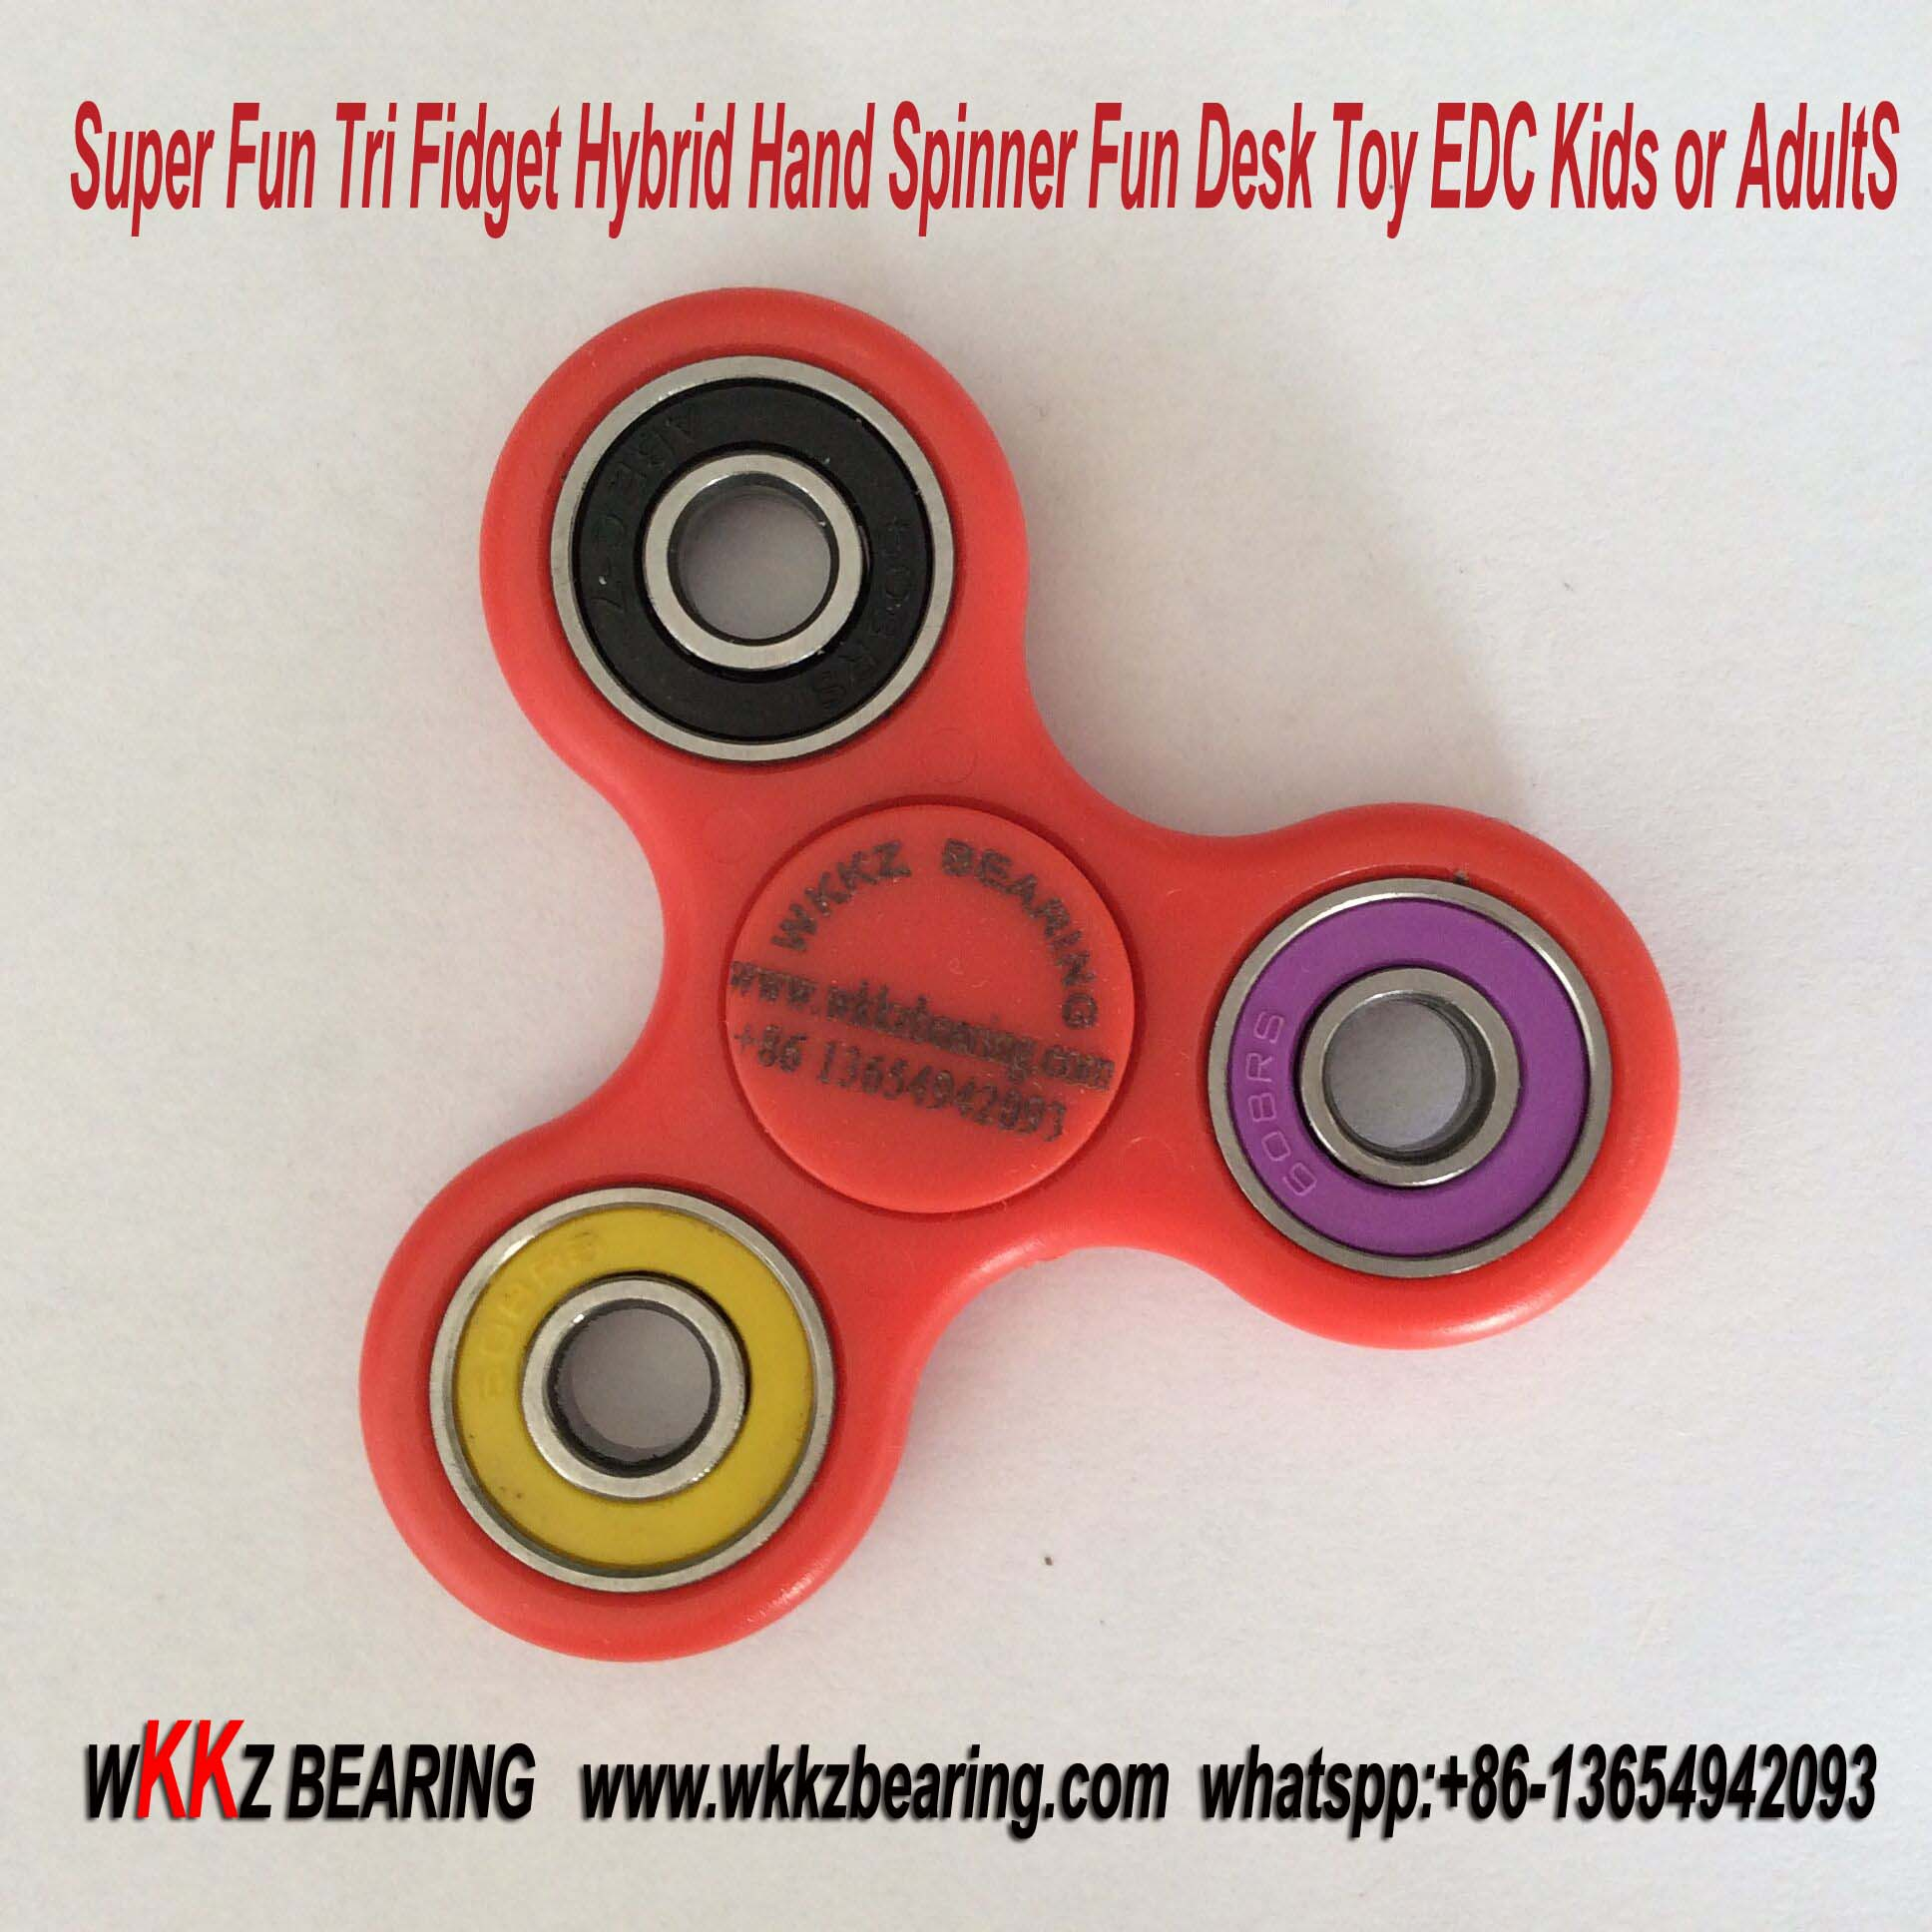 Super Fun Tri Fidget Hybrid Hand Spinner Fun Desk Toy EDC Kids or Adults.